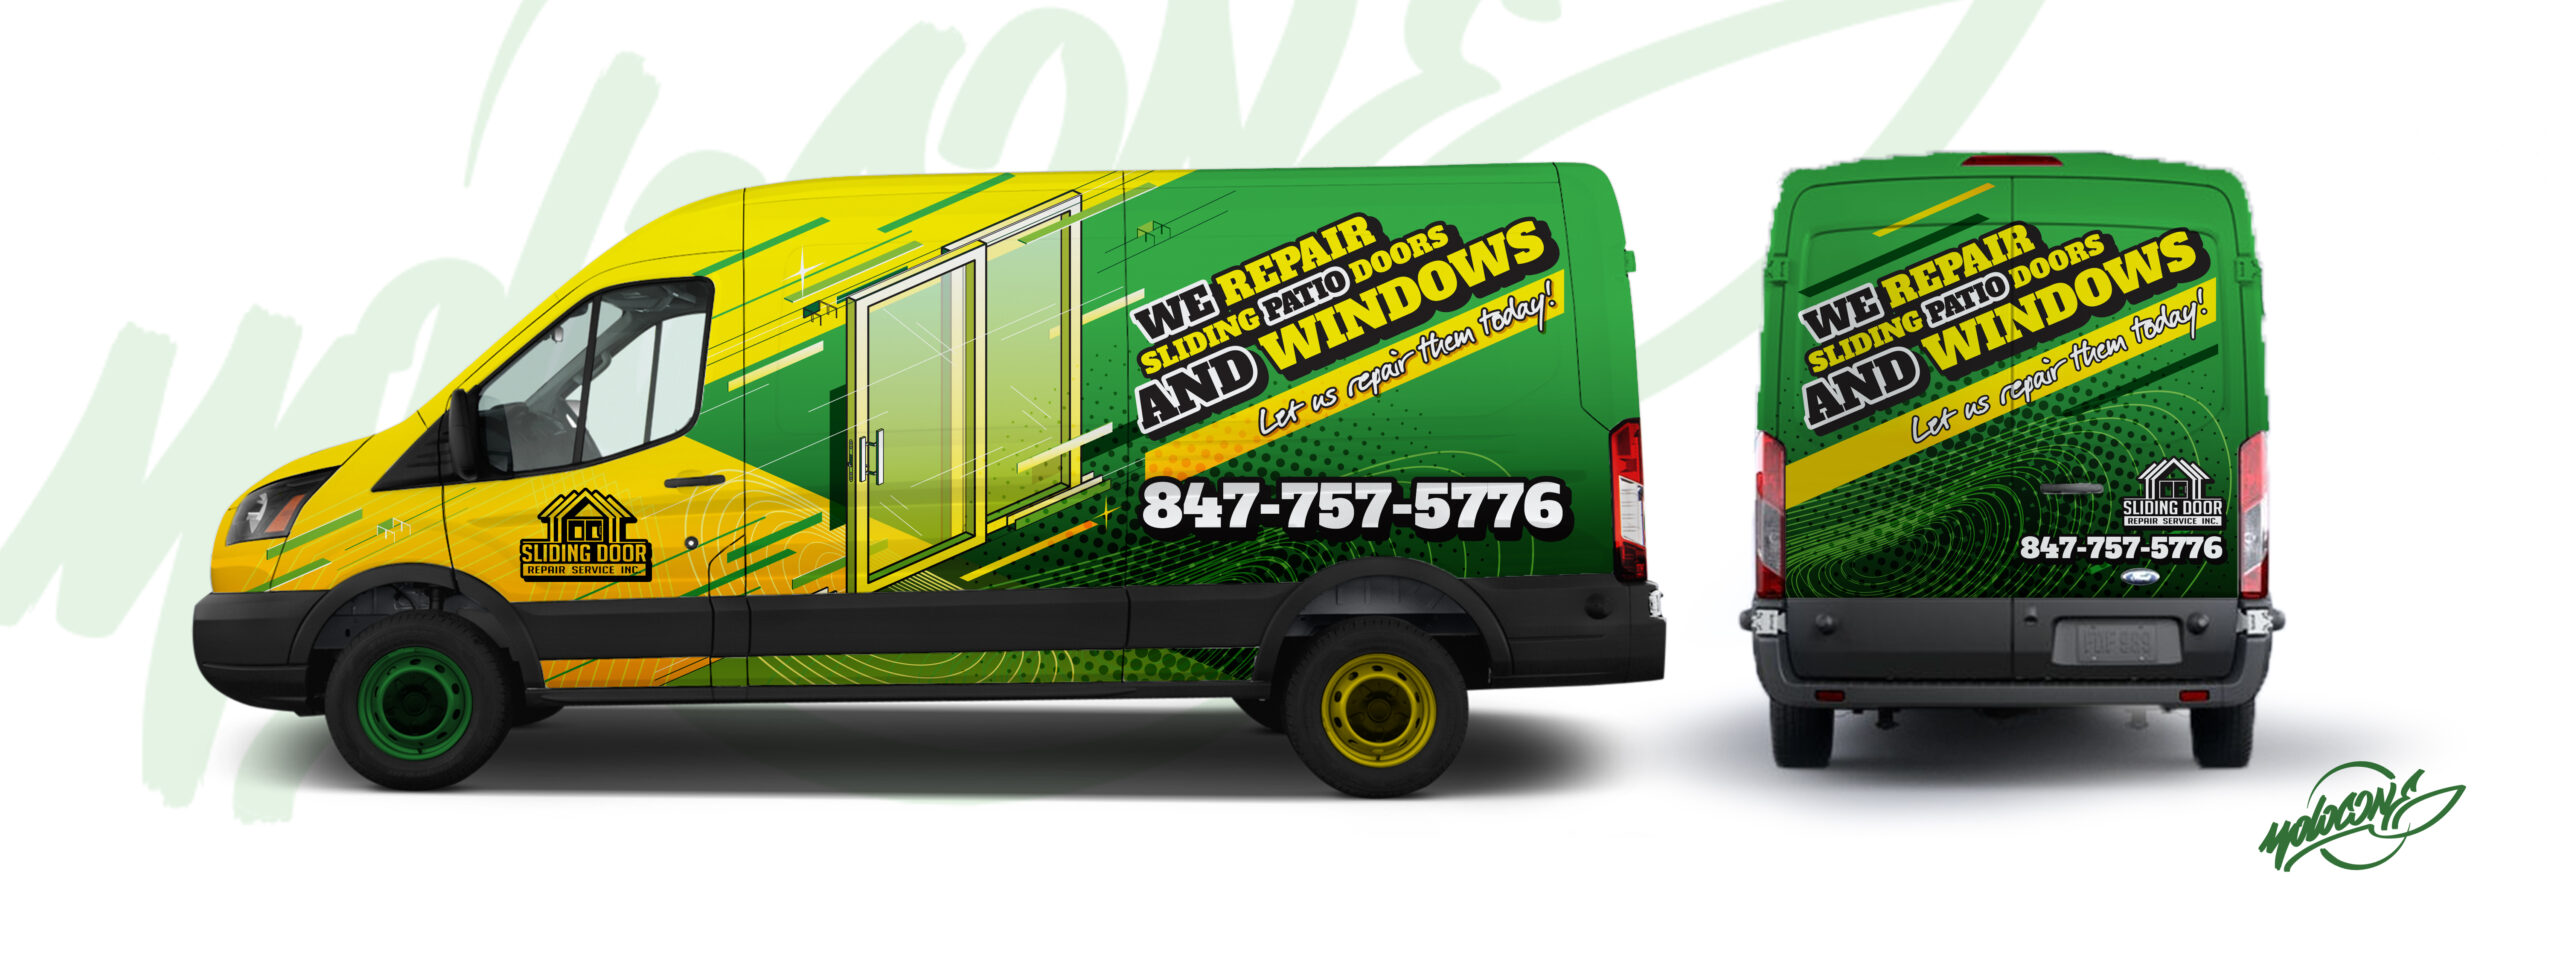 windows repair - branding